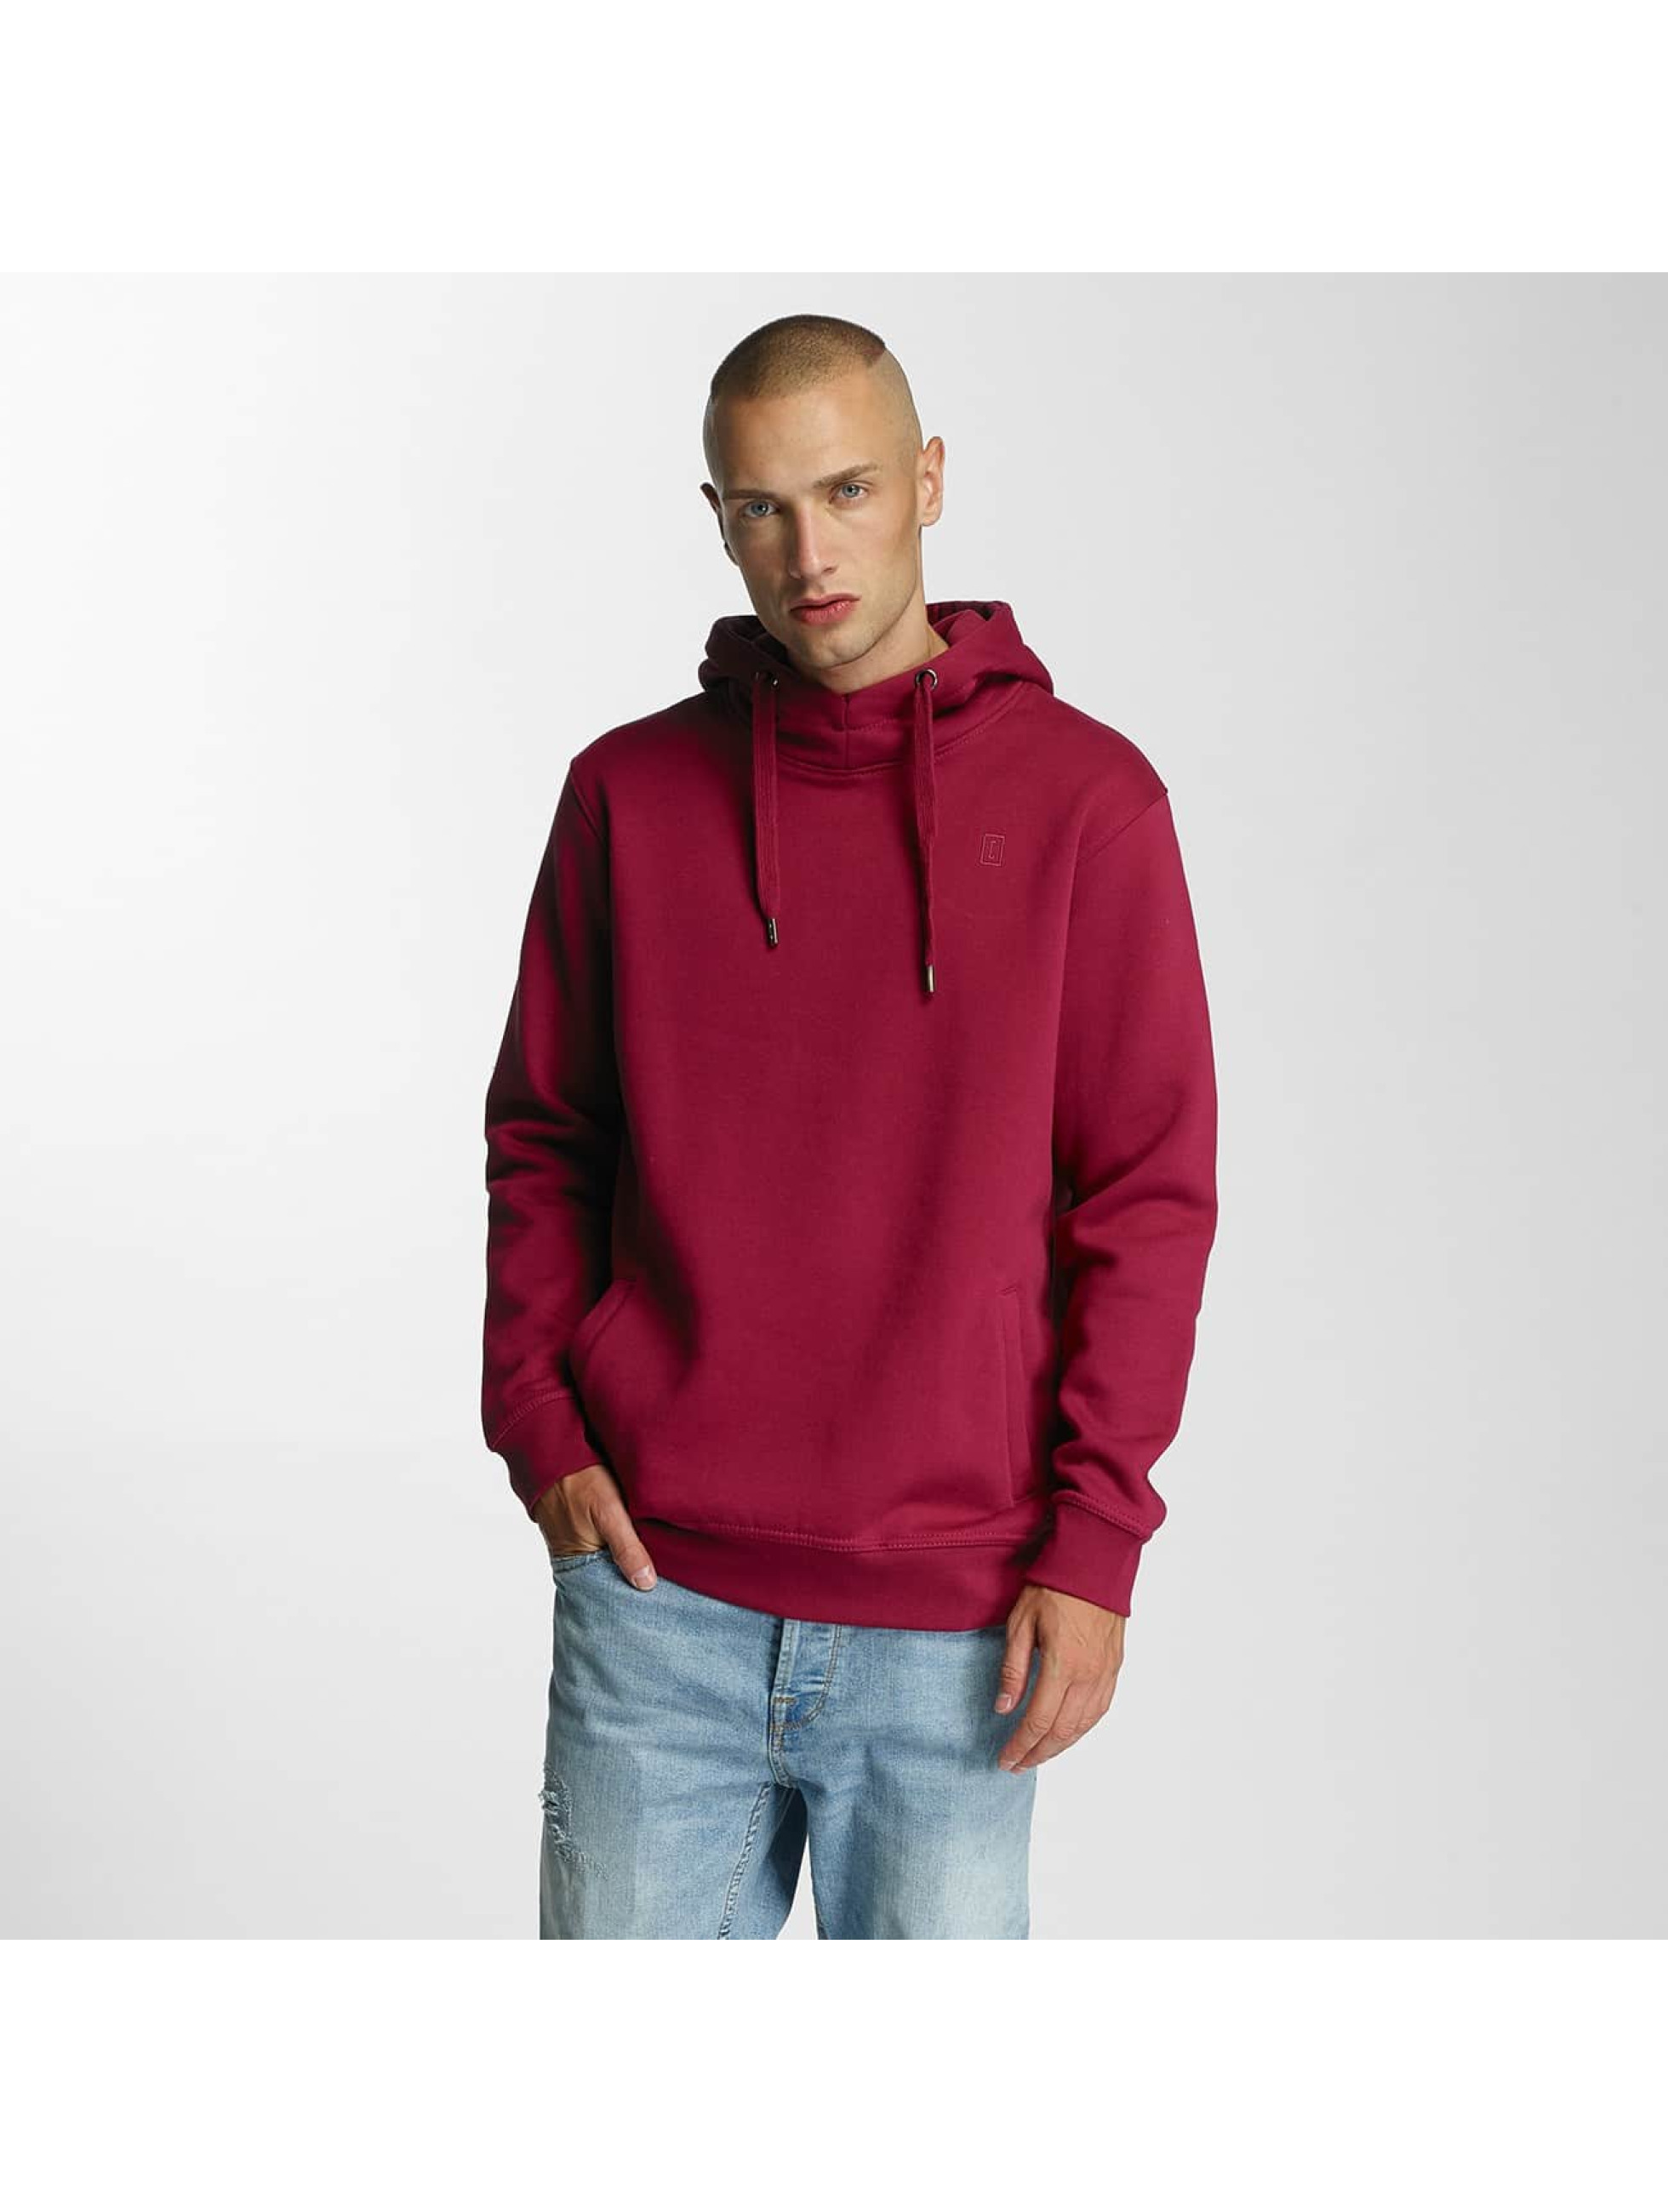 Cyprime / Hoodie Cyber in red 3XL